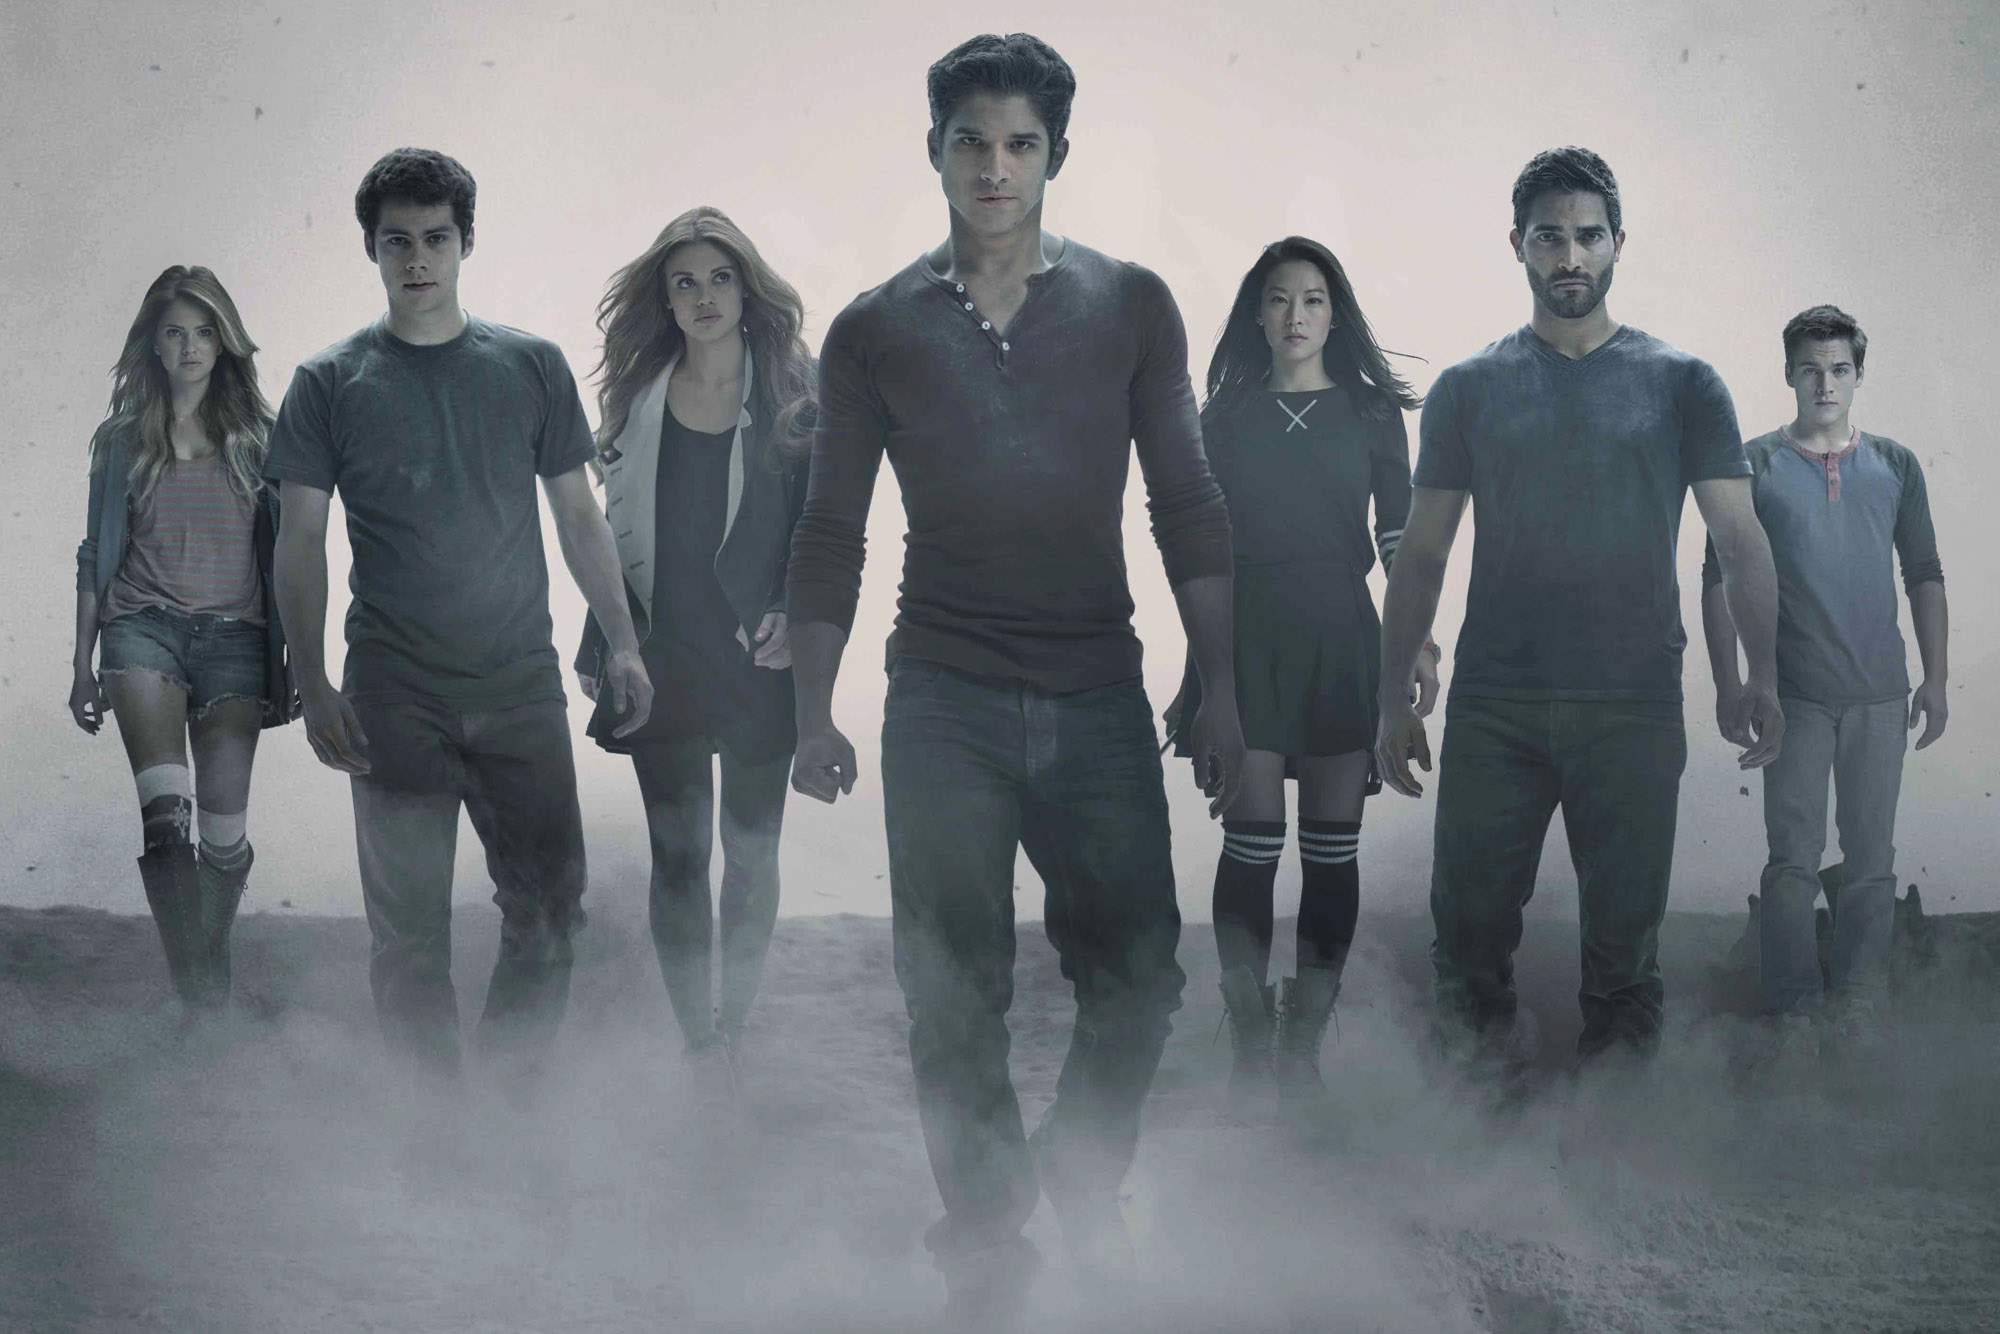 Some very important 'Teen Wolf' spoilers (in honor of the new season)